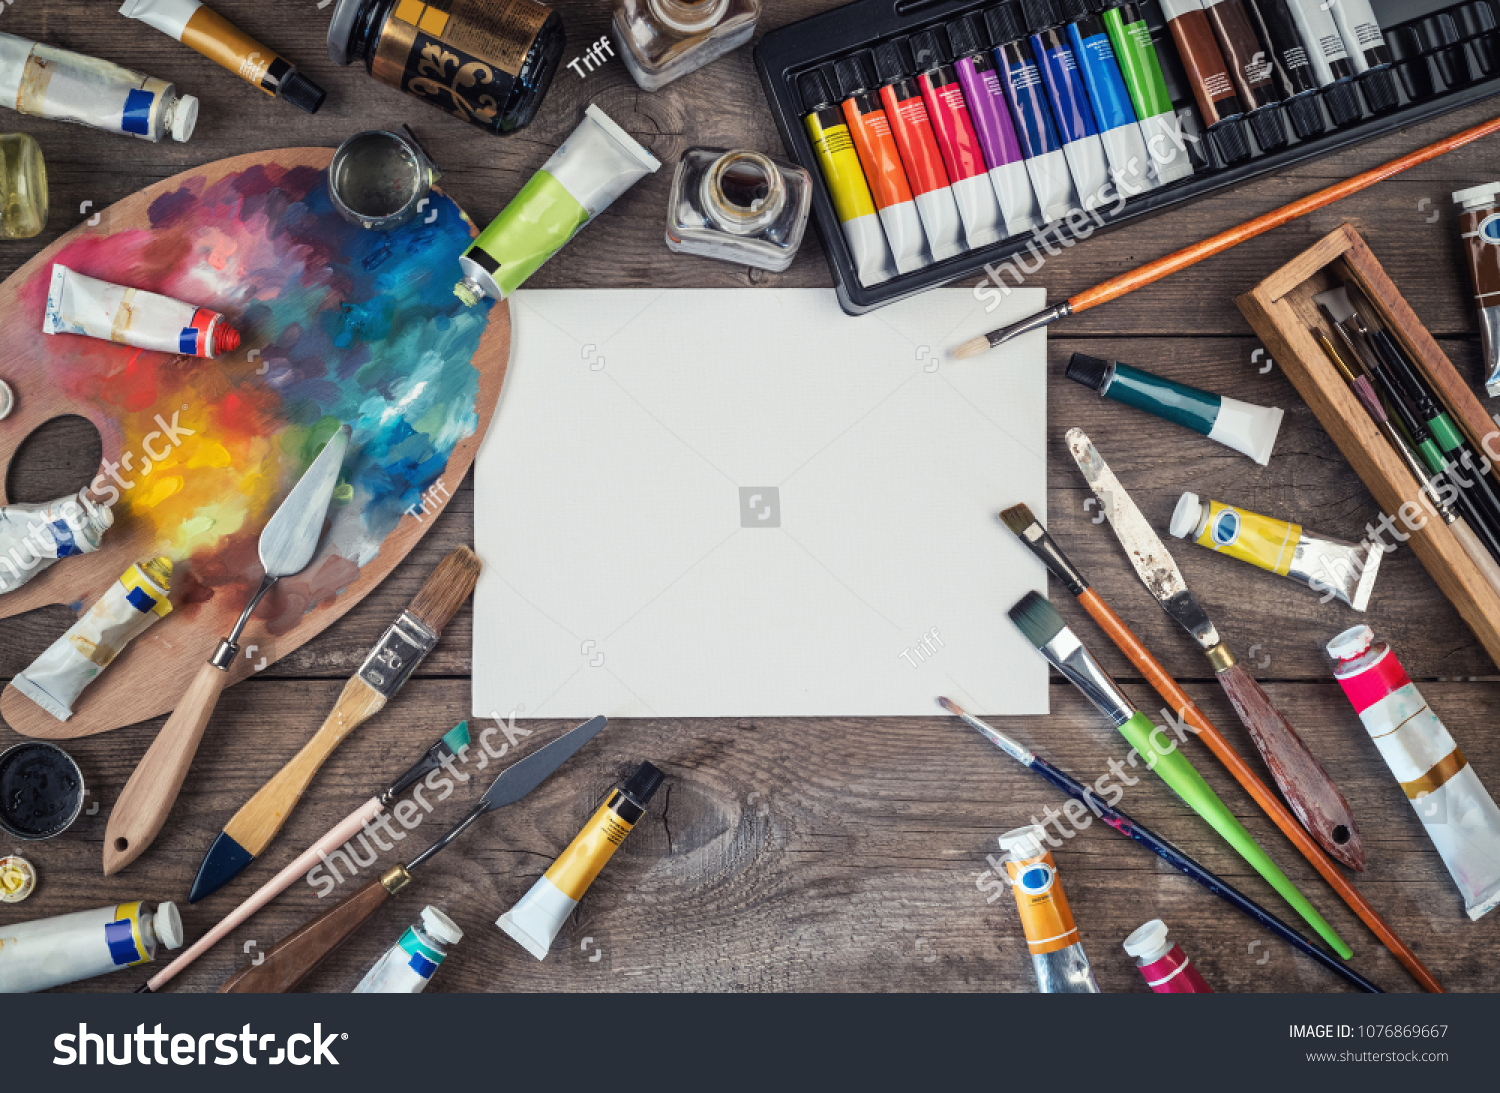 Set of artist accessories collection. Canvas, tube of oil paint, art brushes, palette knife lying on the wood table. Artist workshop background. #1076869667